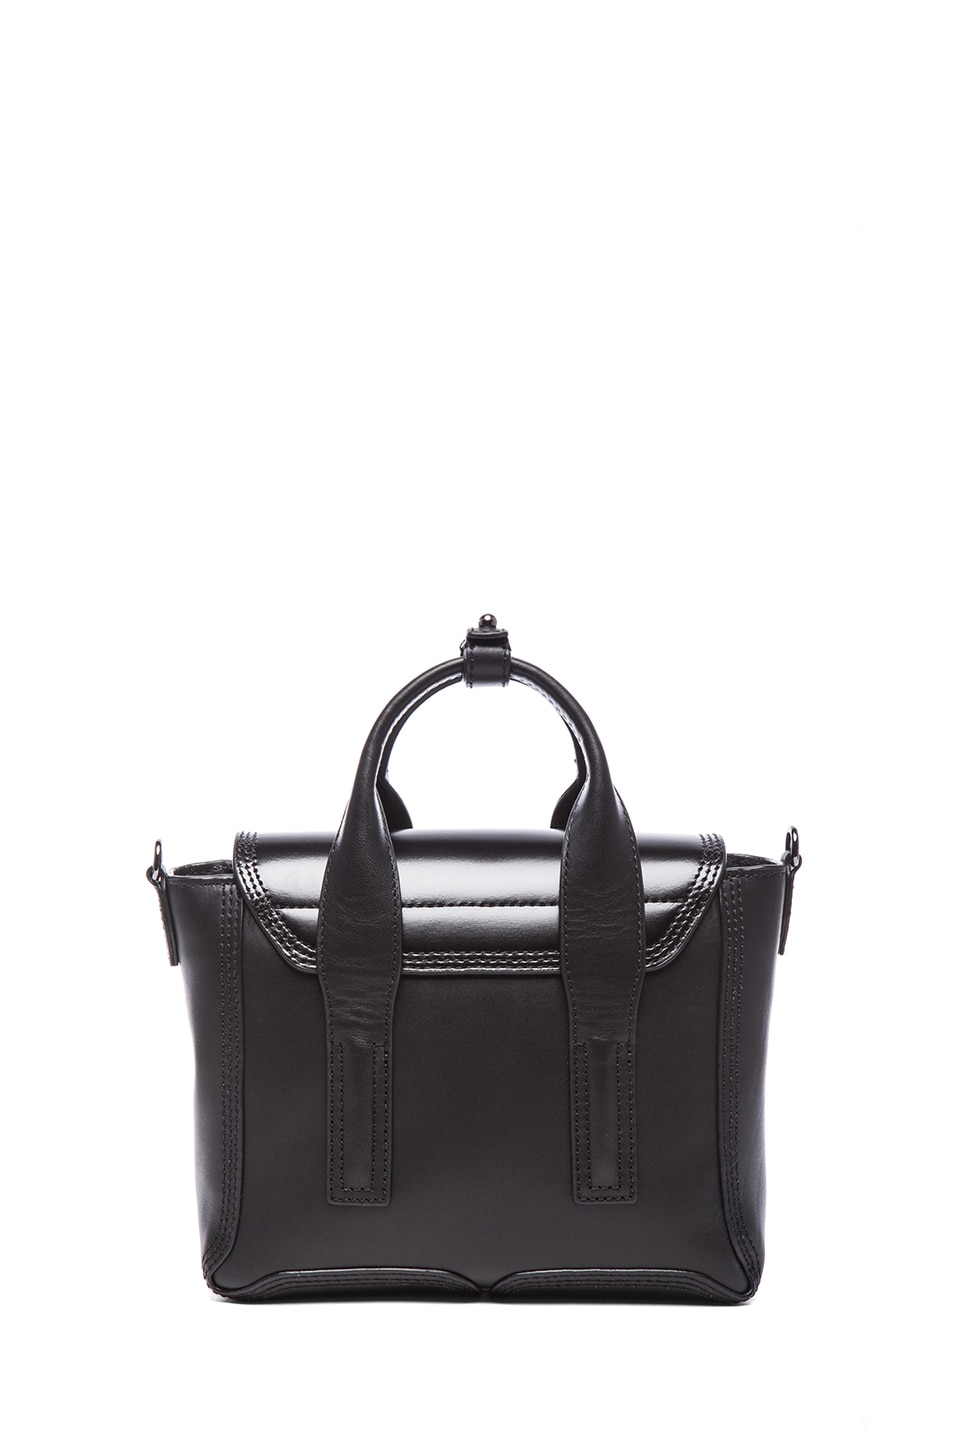 Image 2 of 3.1 phillip lim Mini Pashli Satchel in Gunmetal Black